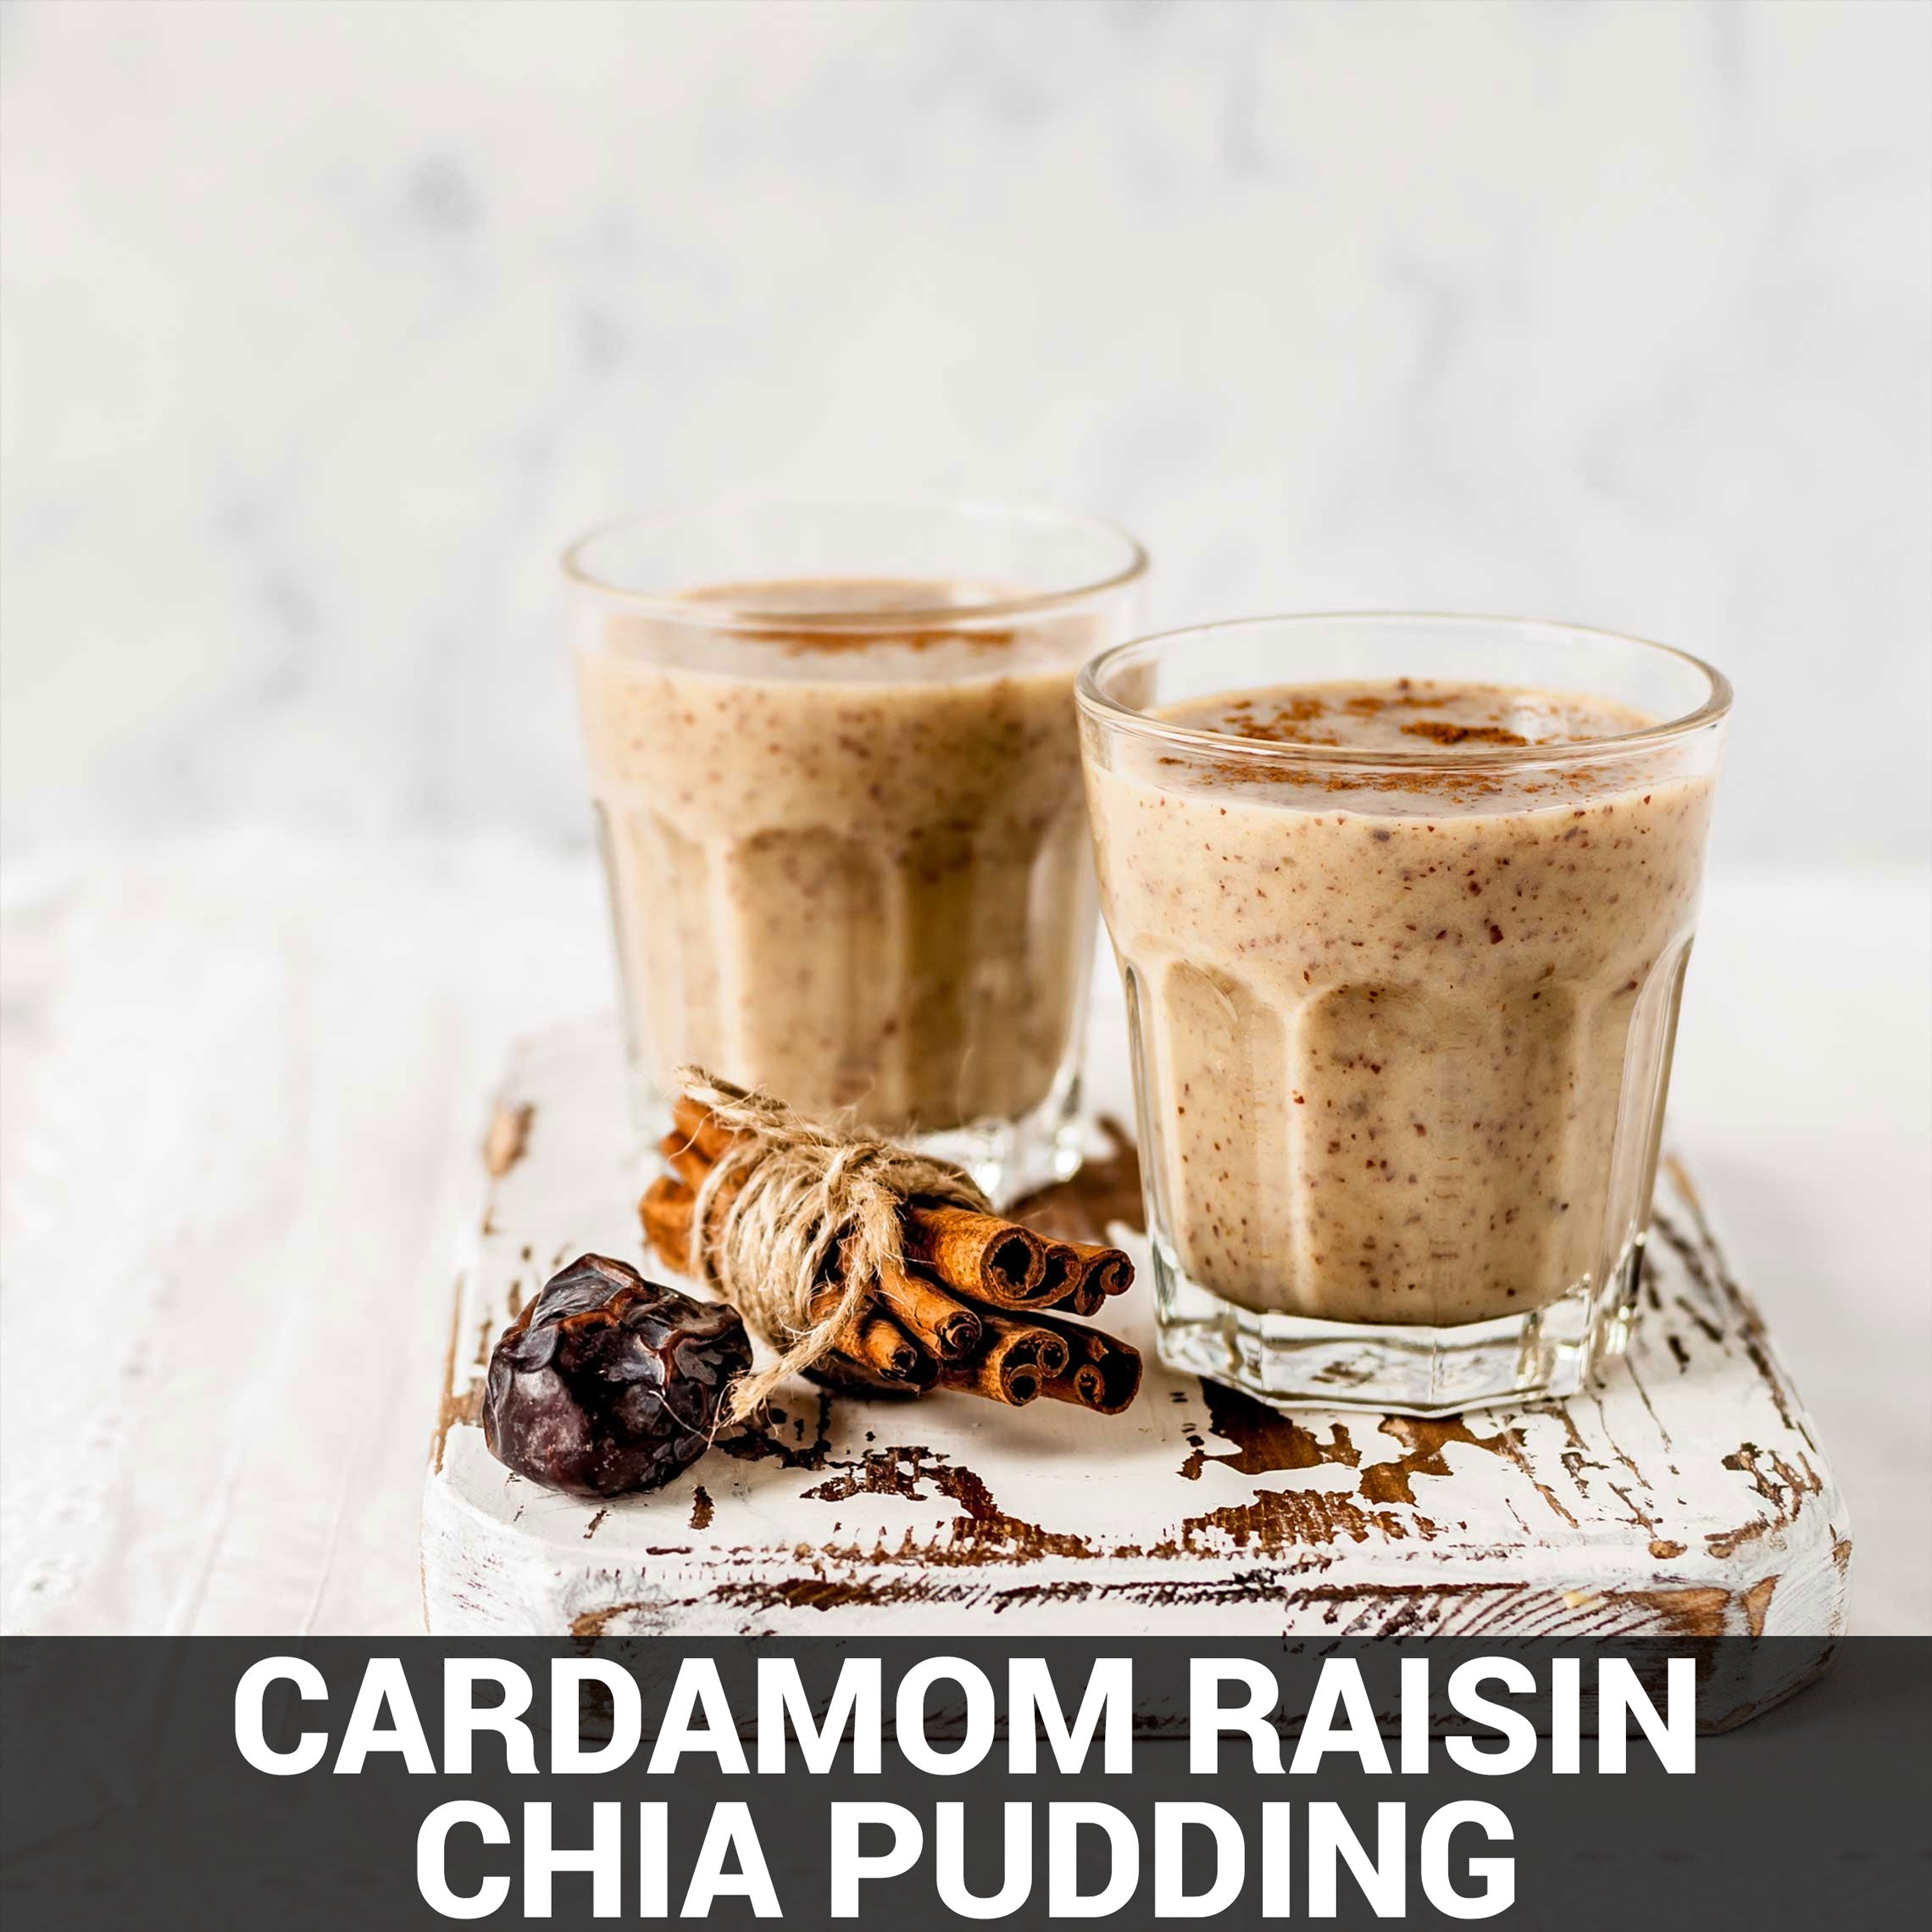 Cardamom Raisin Chia Pudding Recipe - Foods Alive